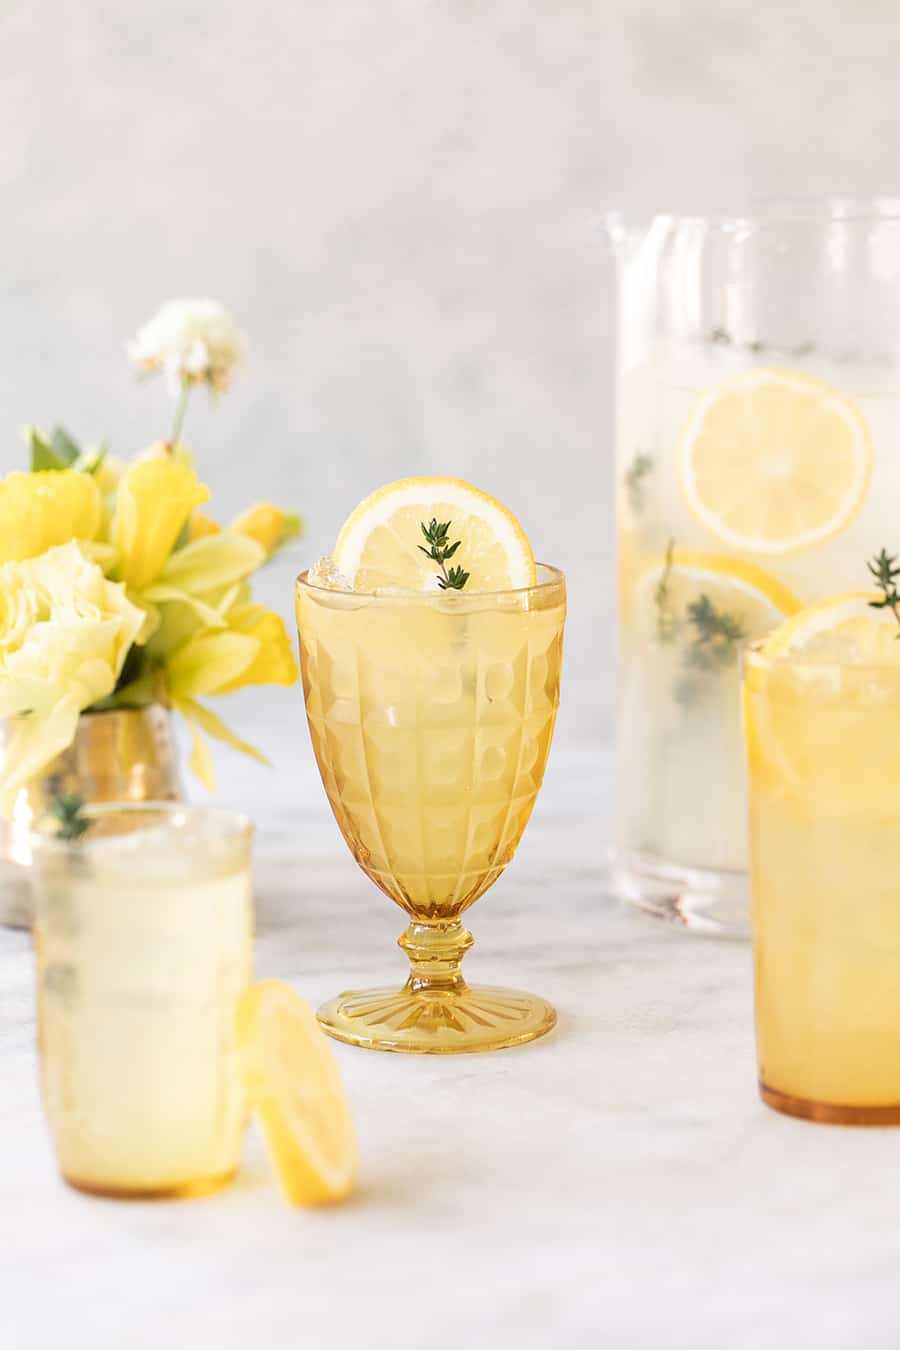 Tequila cocktail with lemonade